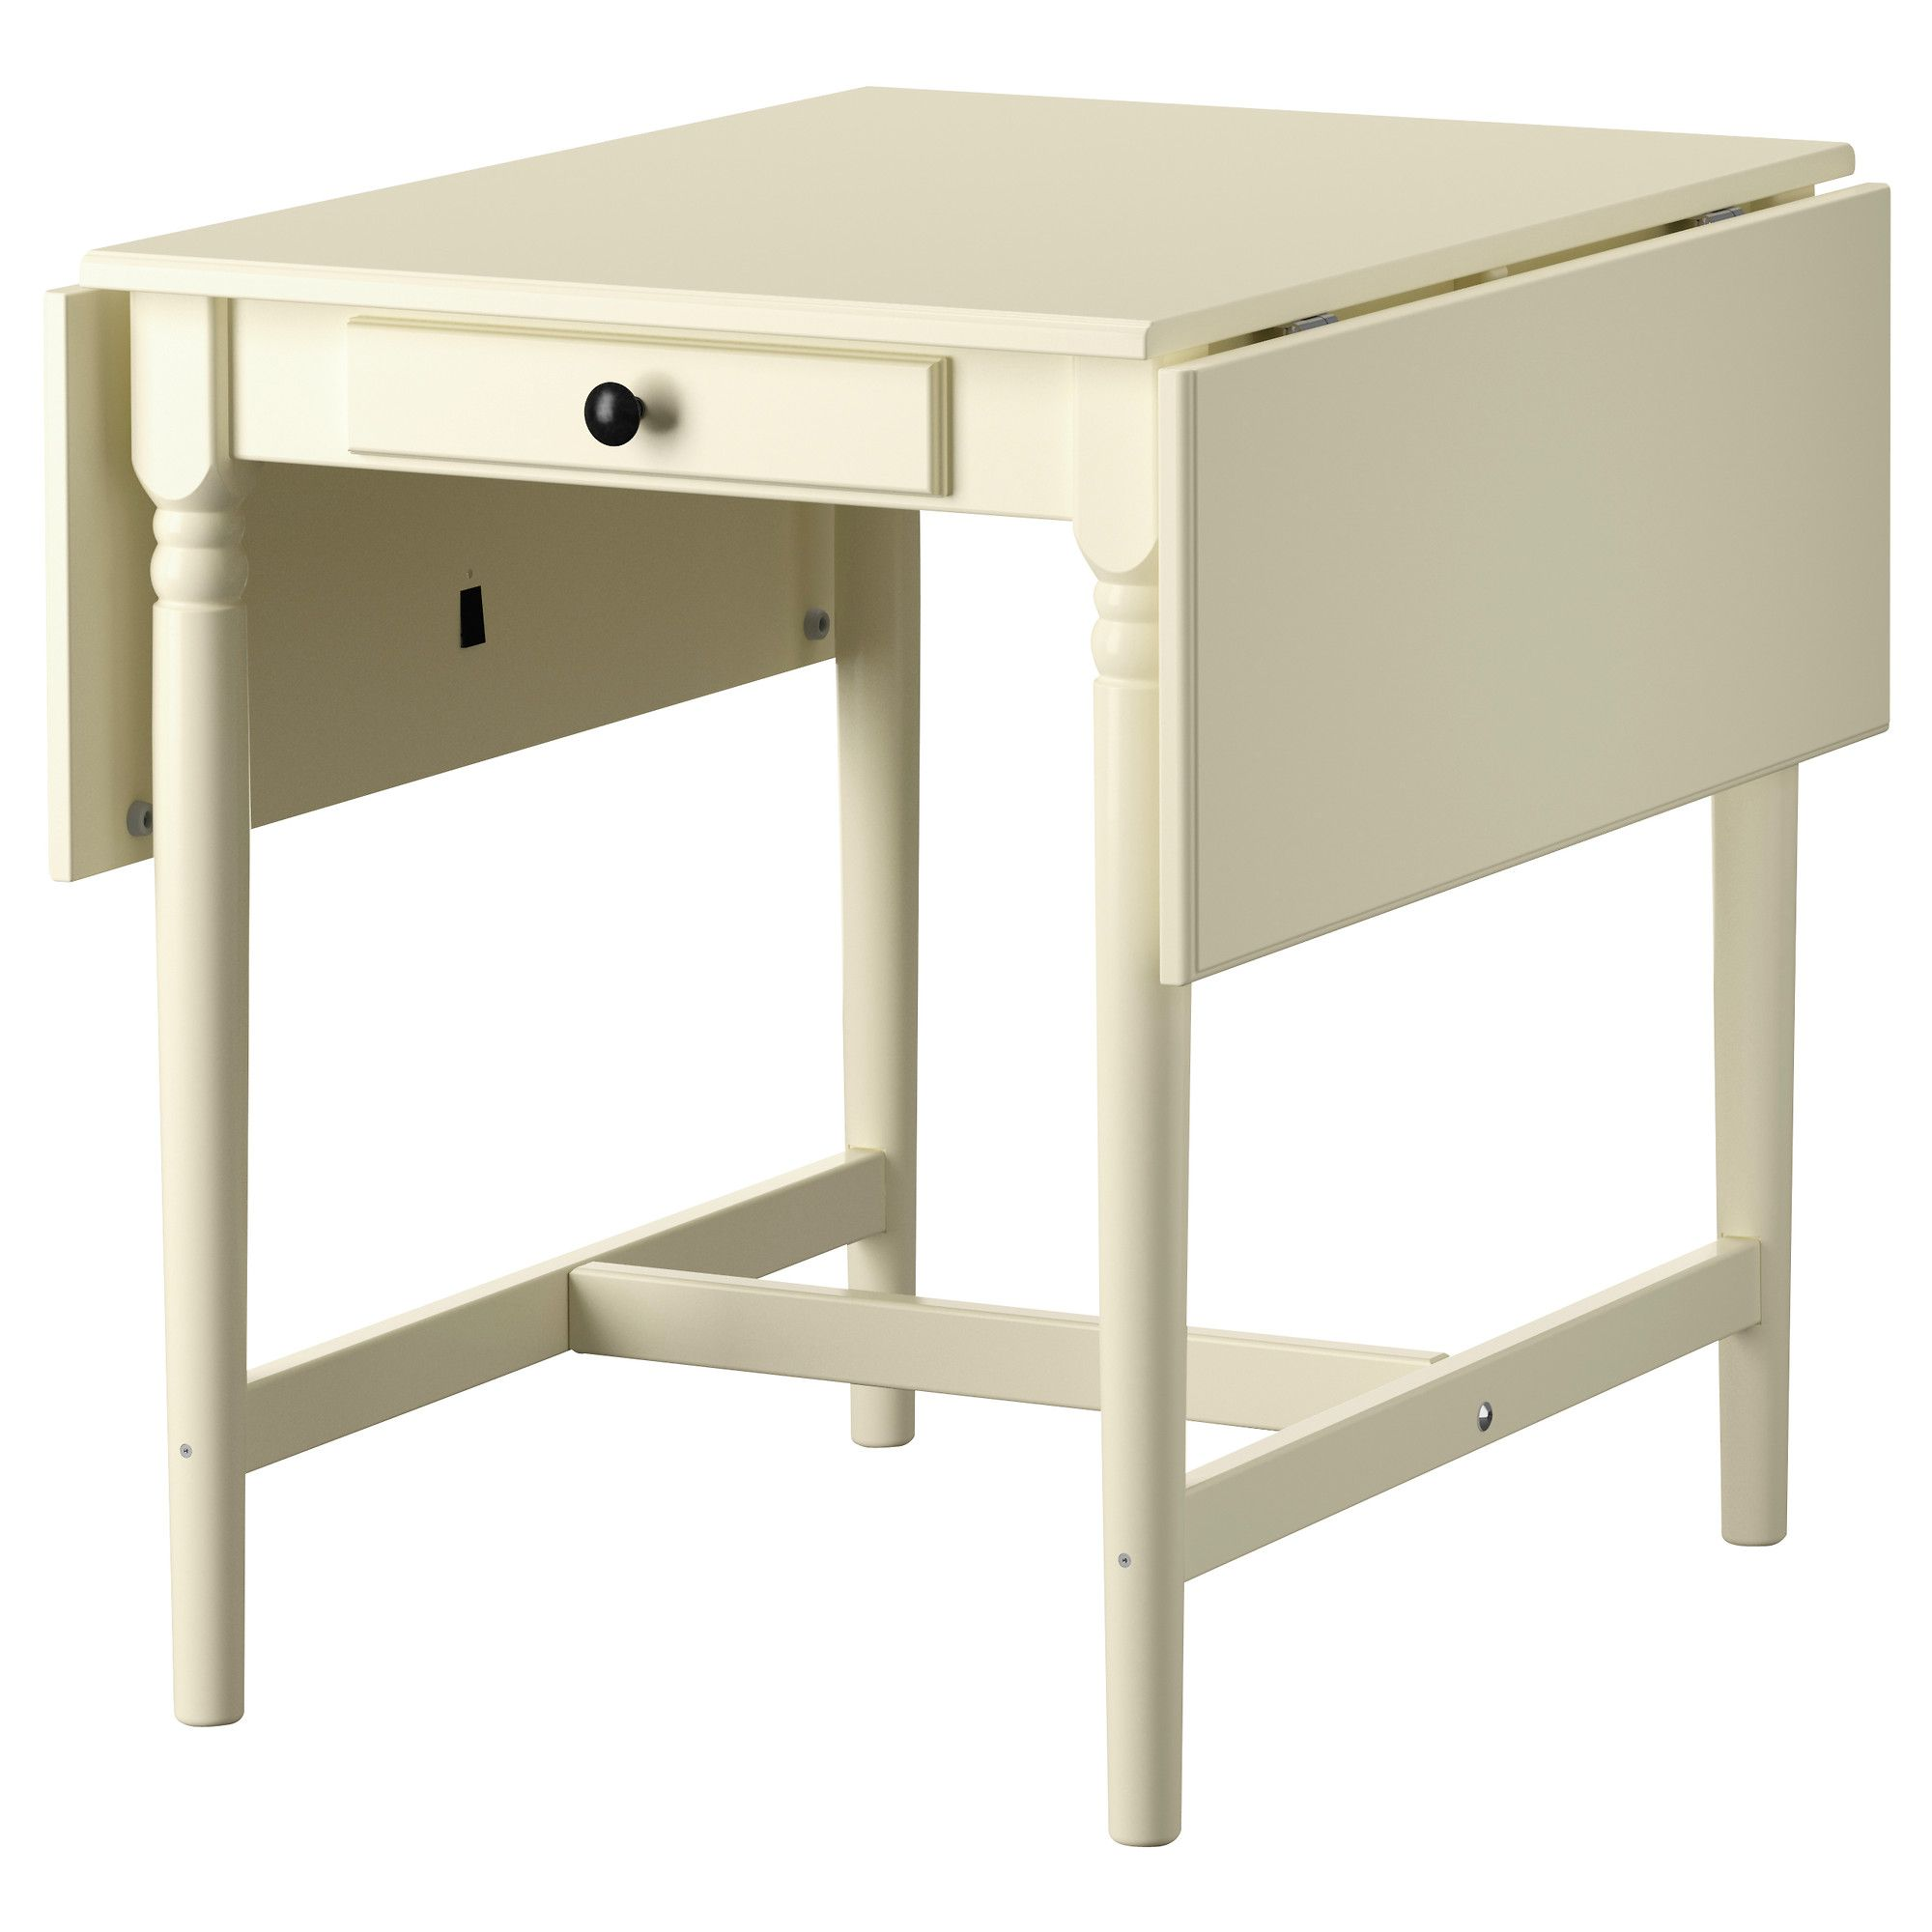 Ingatorp Drop Leaf Table White 23 143546 18x30 34 Ikea